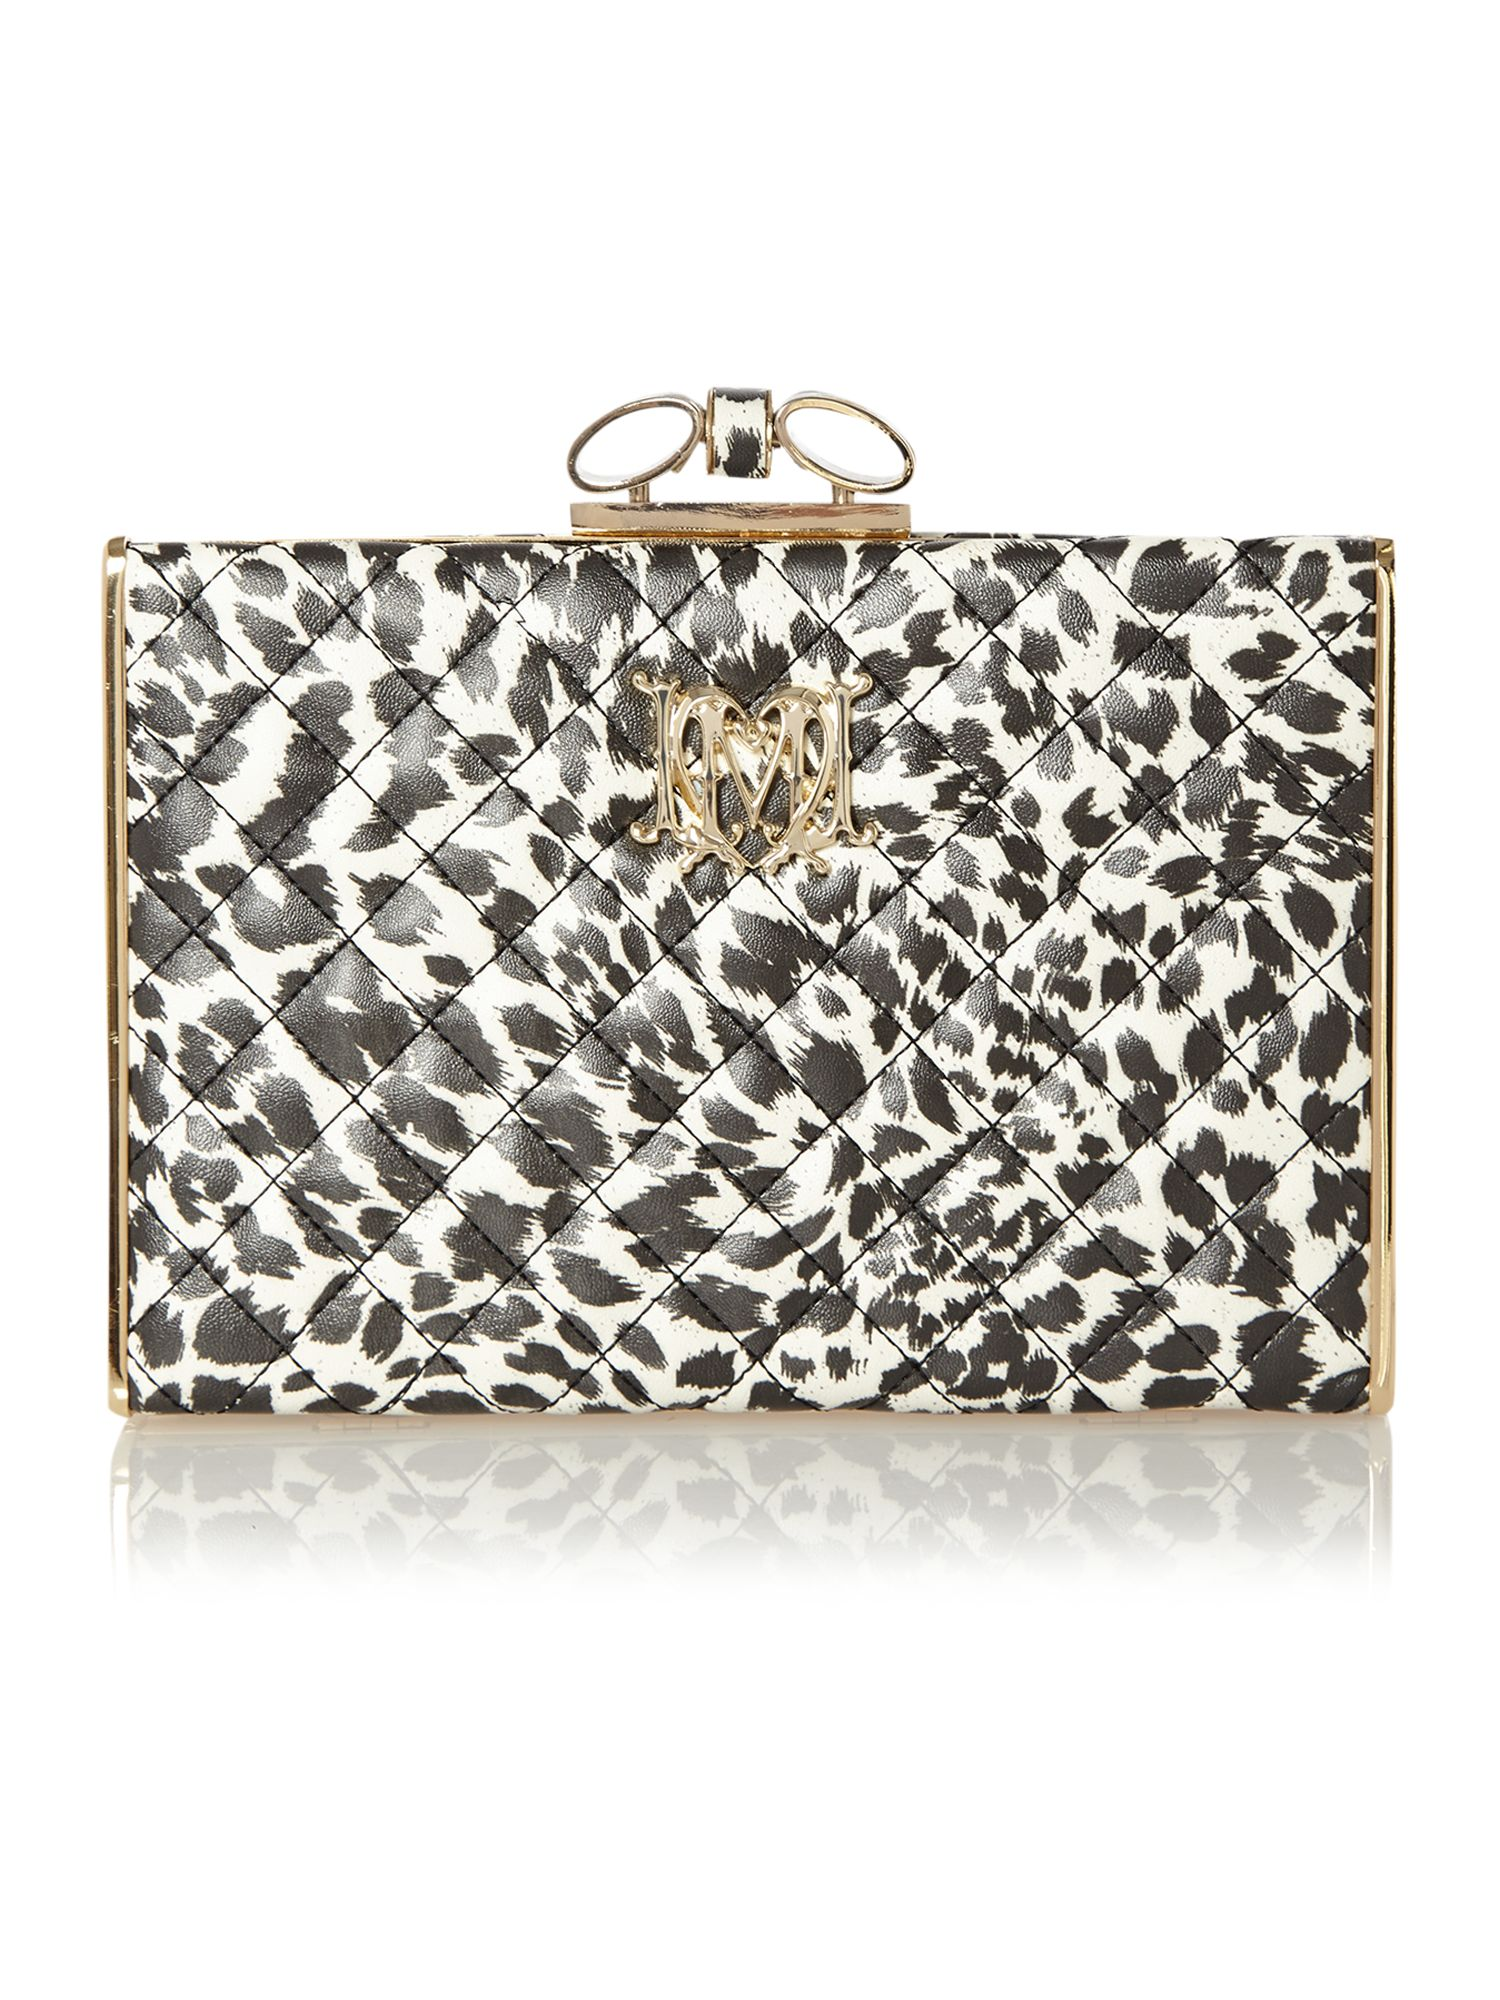 Black and white leopard print clasp clutch bag